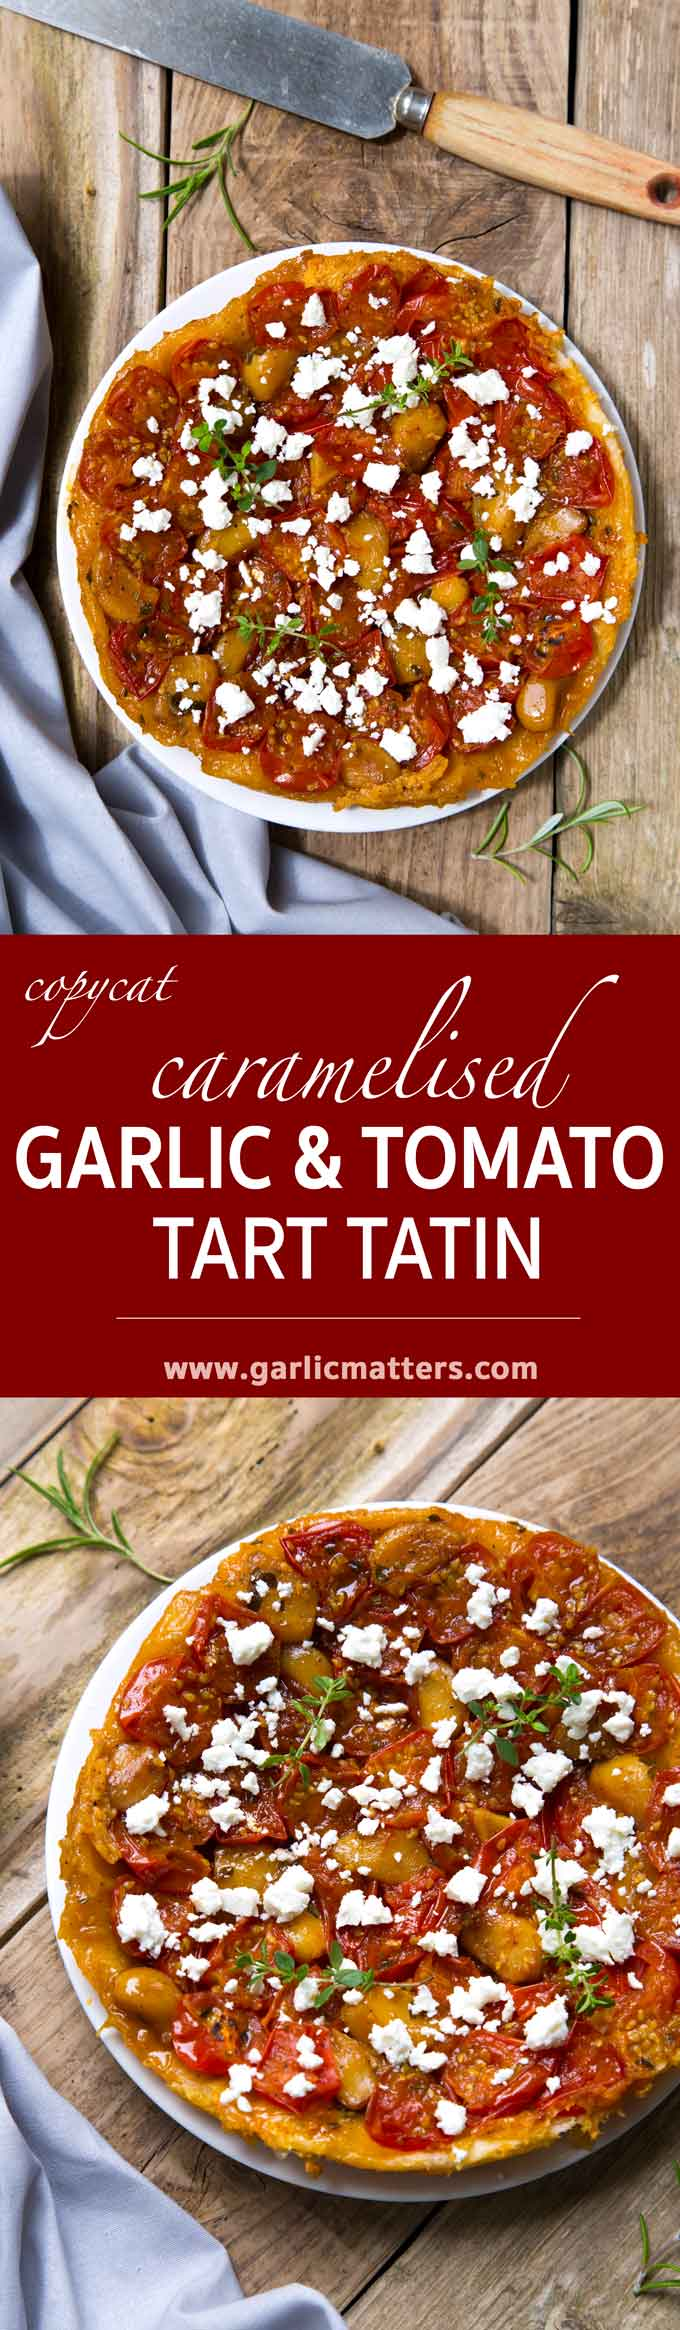 Caramelised Garlic and Tomato Tart Tatin melts in the mouth and makes an impressive dinner-party starter or summer lunch dish. 45min recipe.